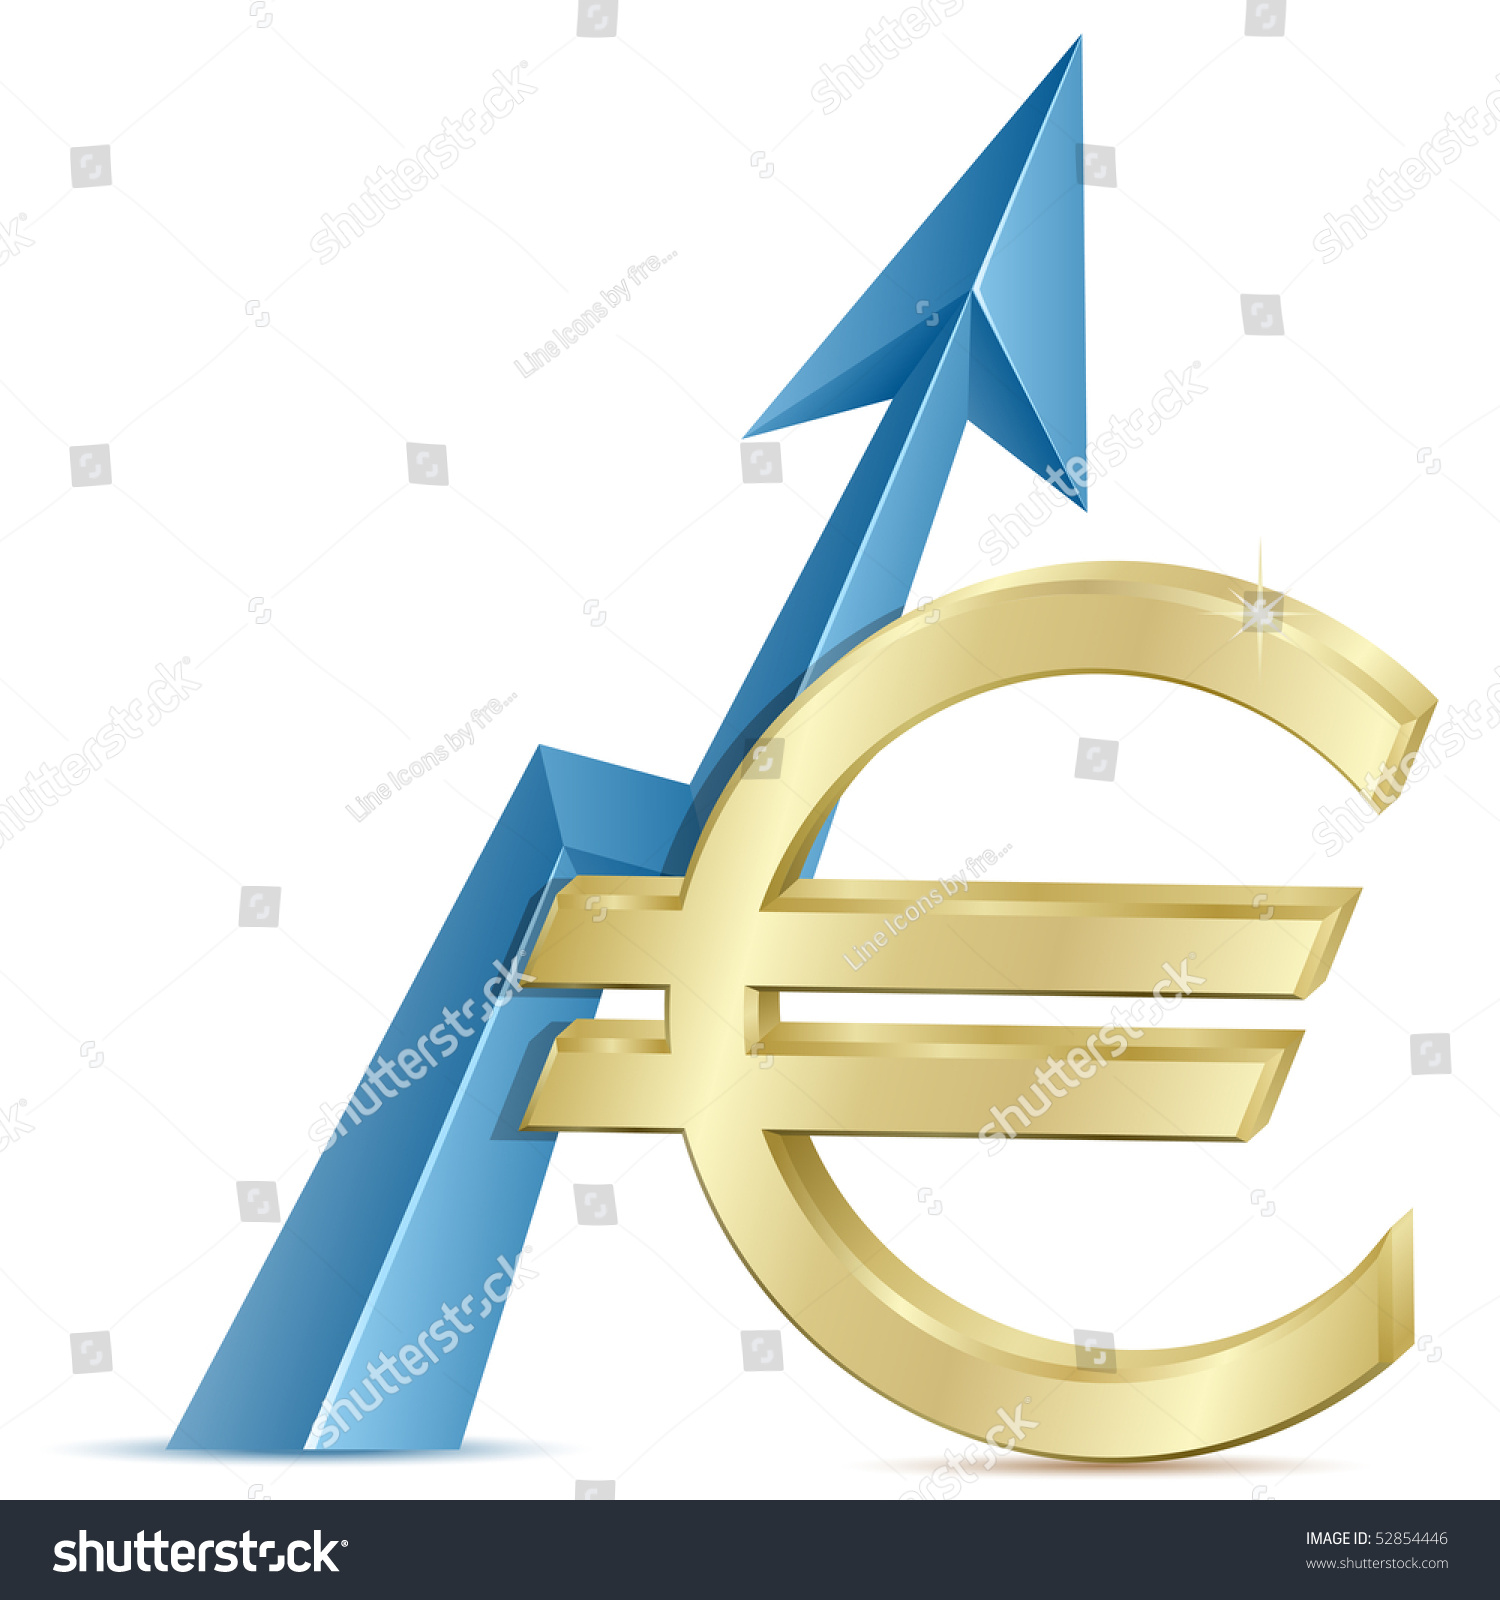 Euro growth growth chart euro sign stock vector 52854446 euro growth growth chart with euro sign exchange rate nvjuhfo Gallery